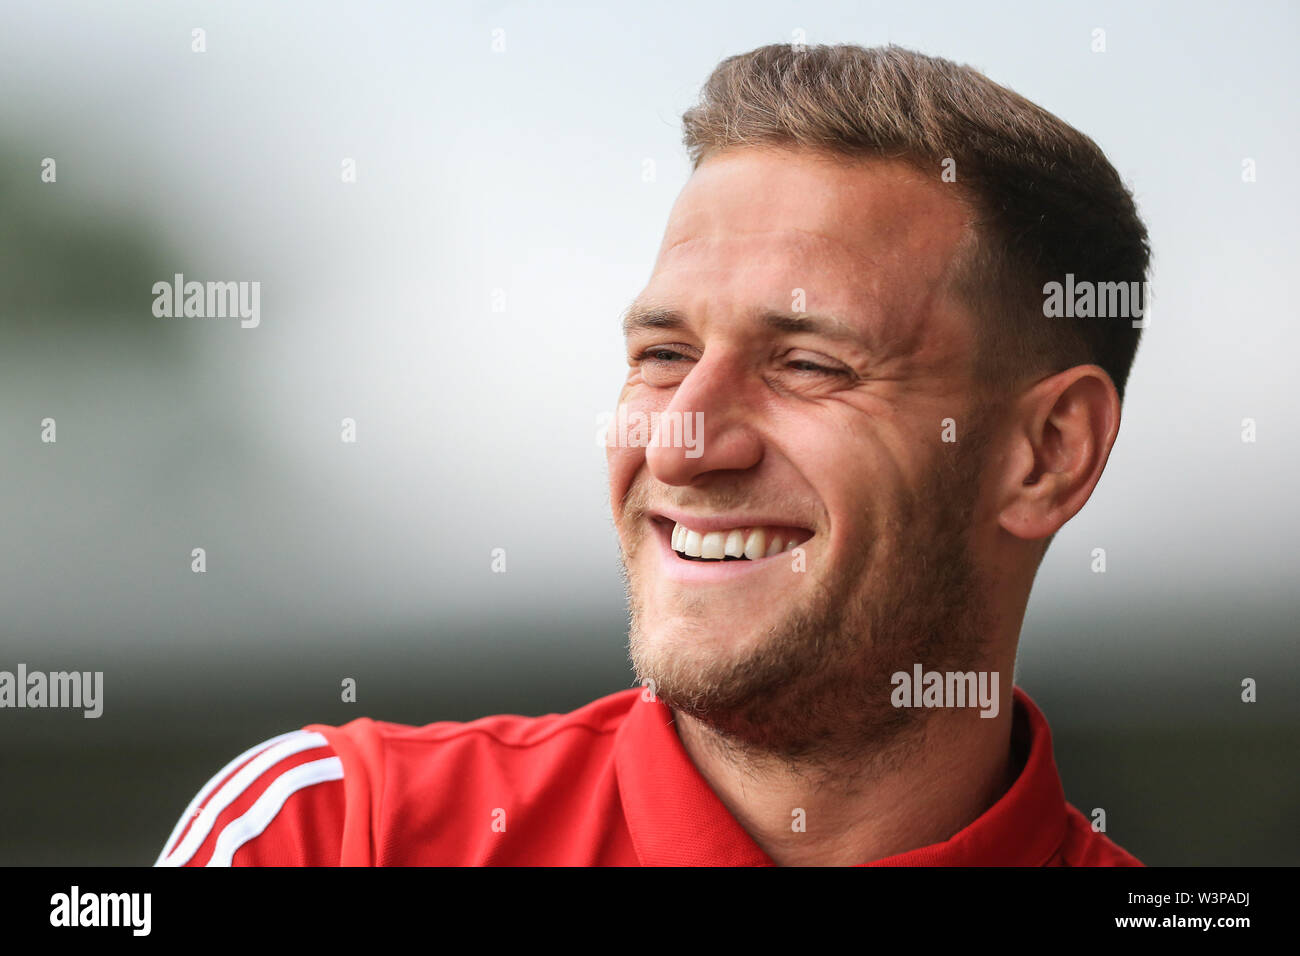 16th July 2019, Pirelli Stadium, Burton upon Trent, England; Pre-Season friendly, Burton Albion vs Sheffield United : Billy Sharp of Sheffield United full of smiles before kickoff  Credit: Mark Cosgrove/News Images  English Football League images are subject to DataCo Licence - Stock Image